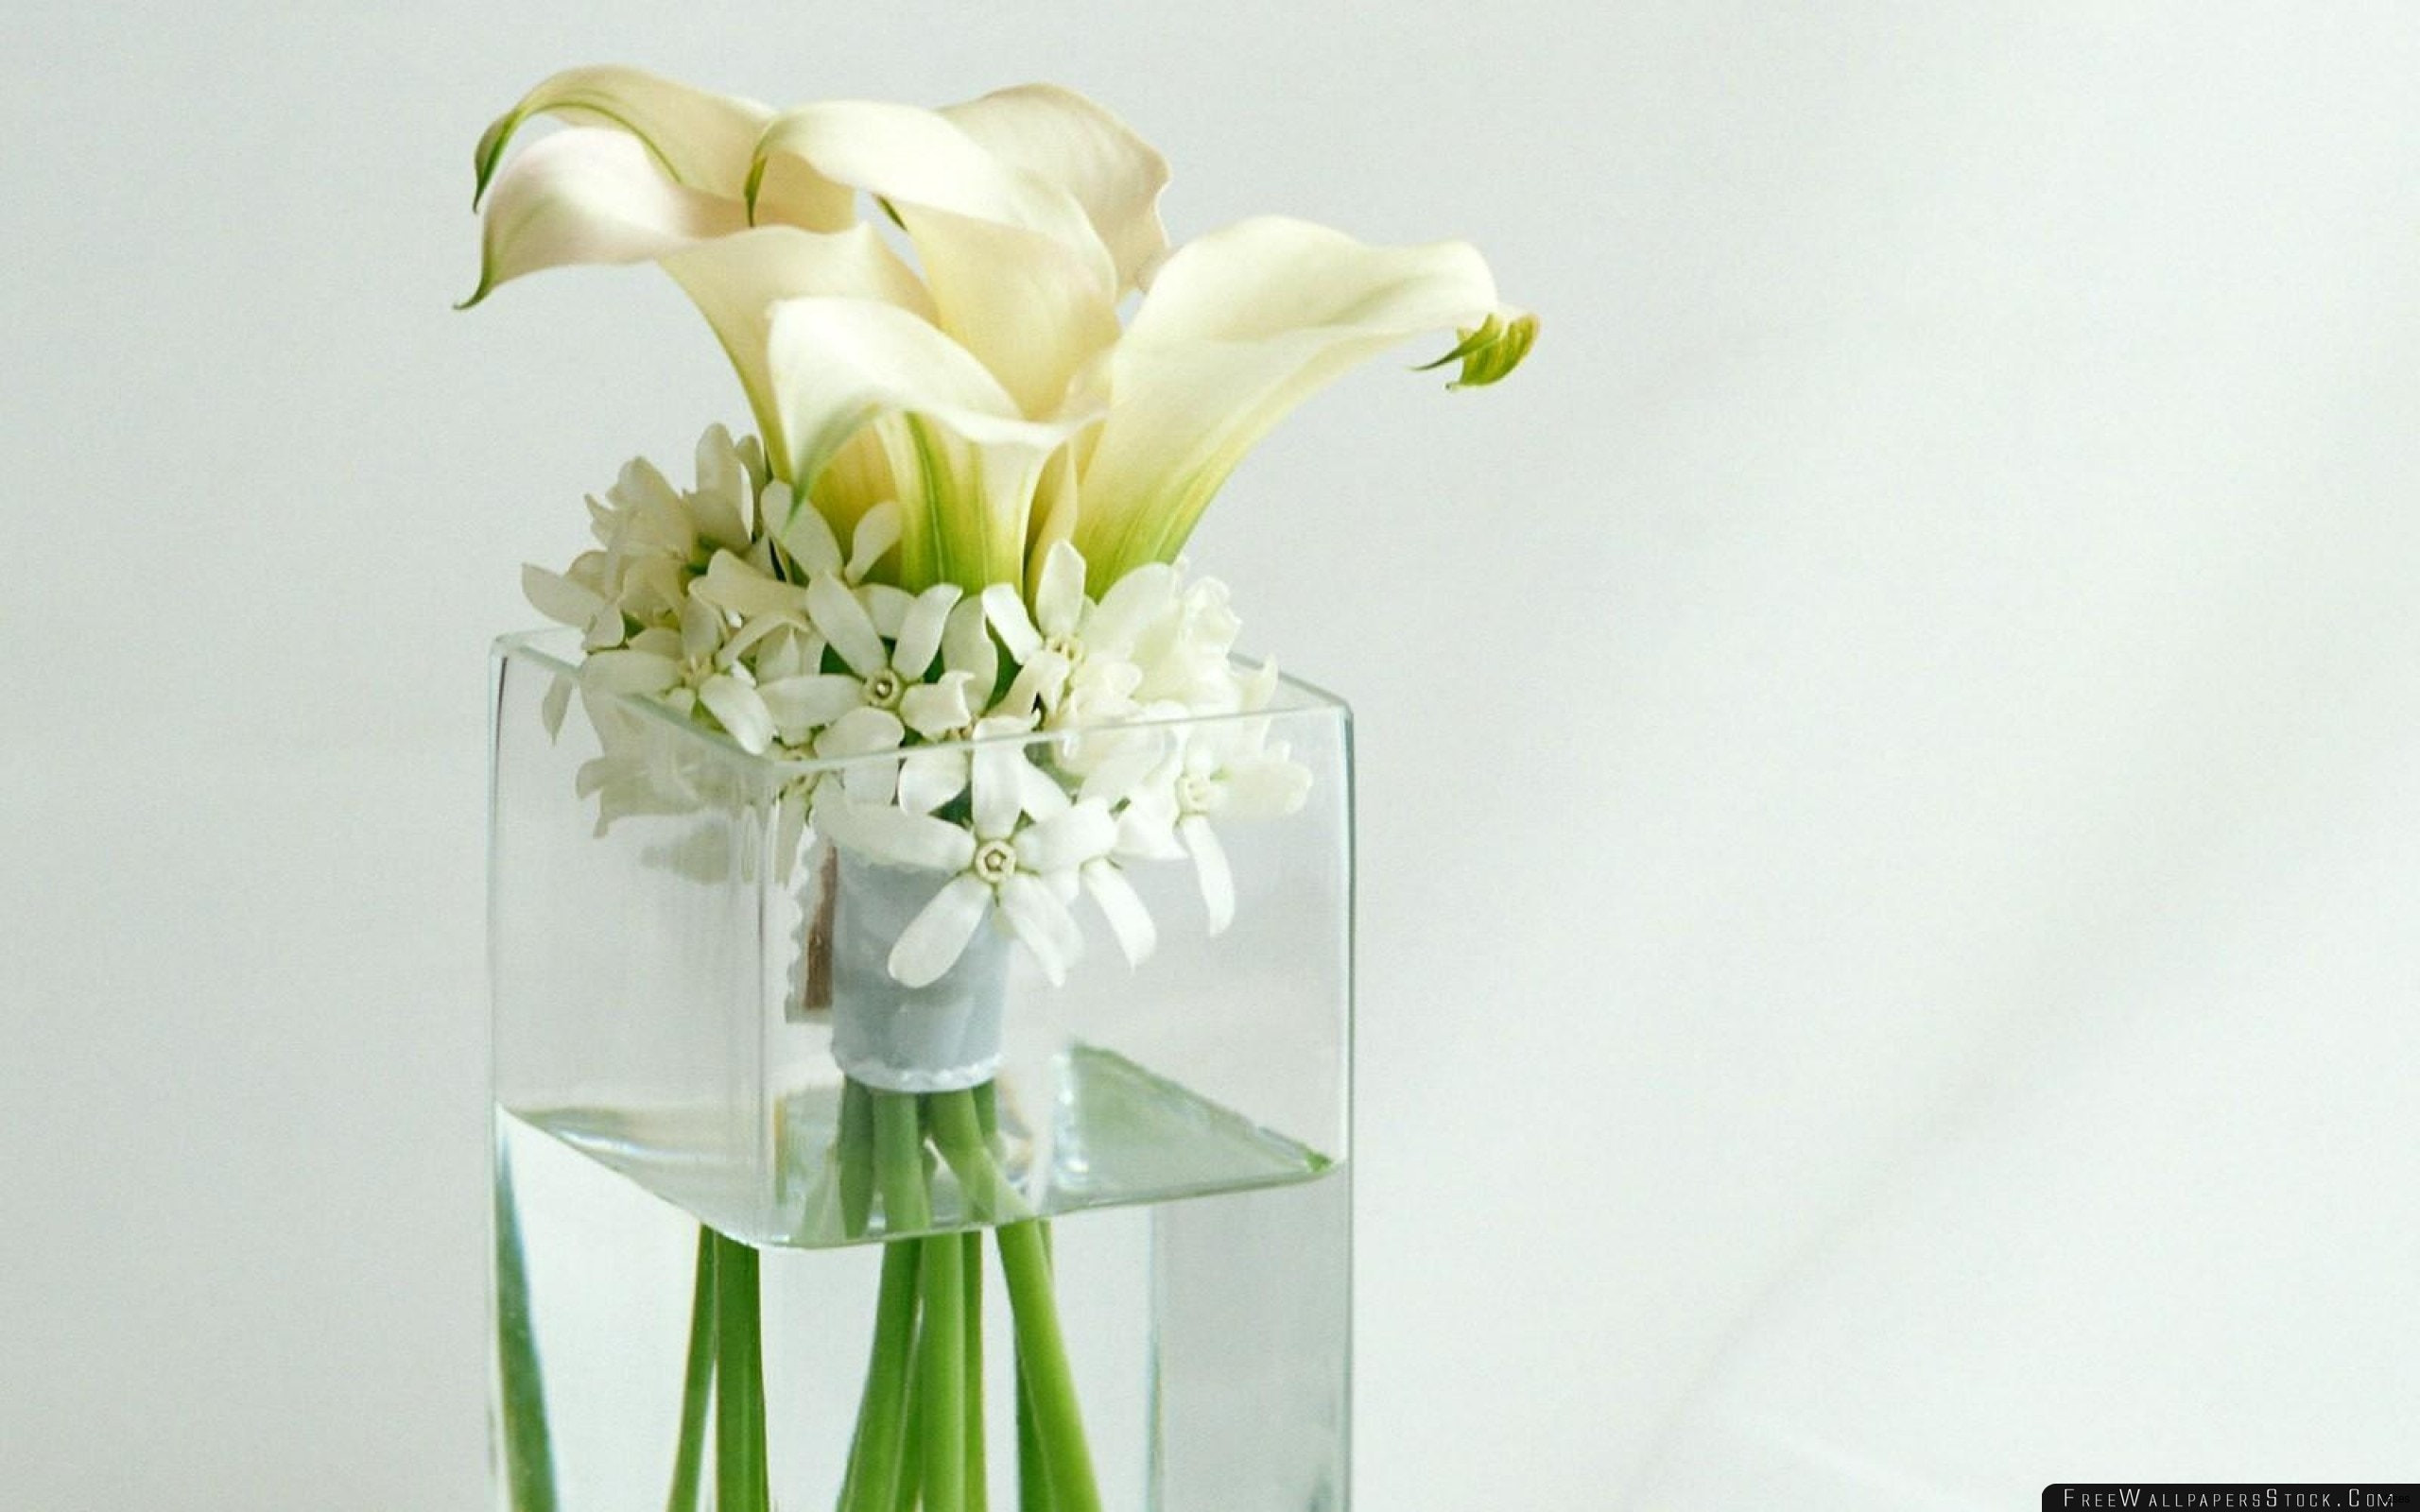 Tall Green Vase Collection Tall Vase Centerpiece Ideas Vases Flowers In Water 0d Artificial Pics